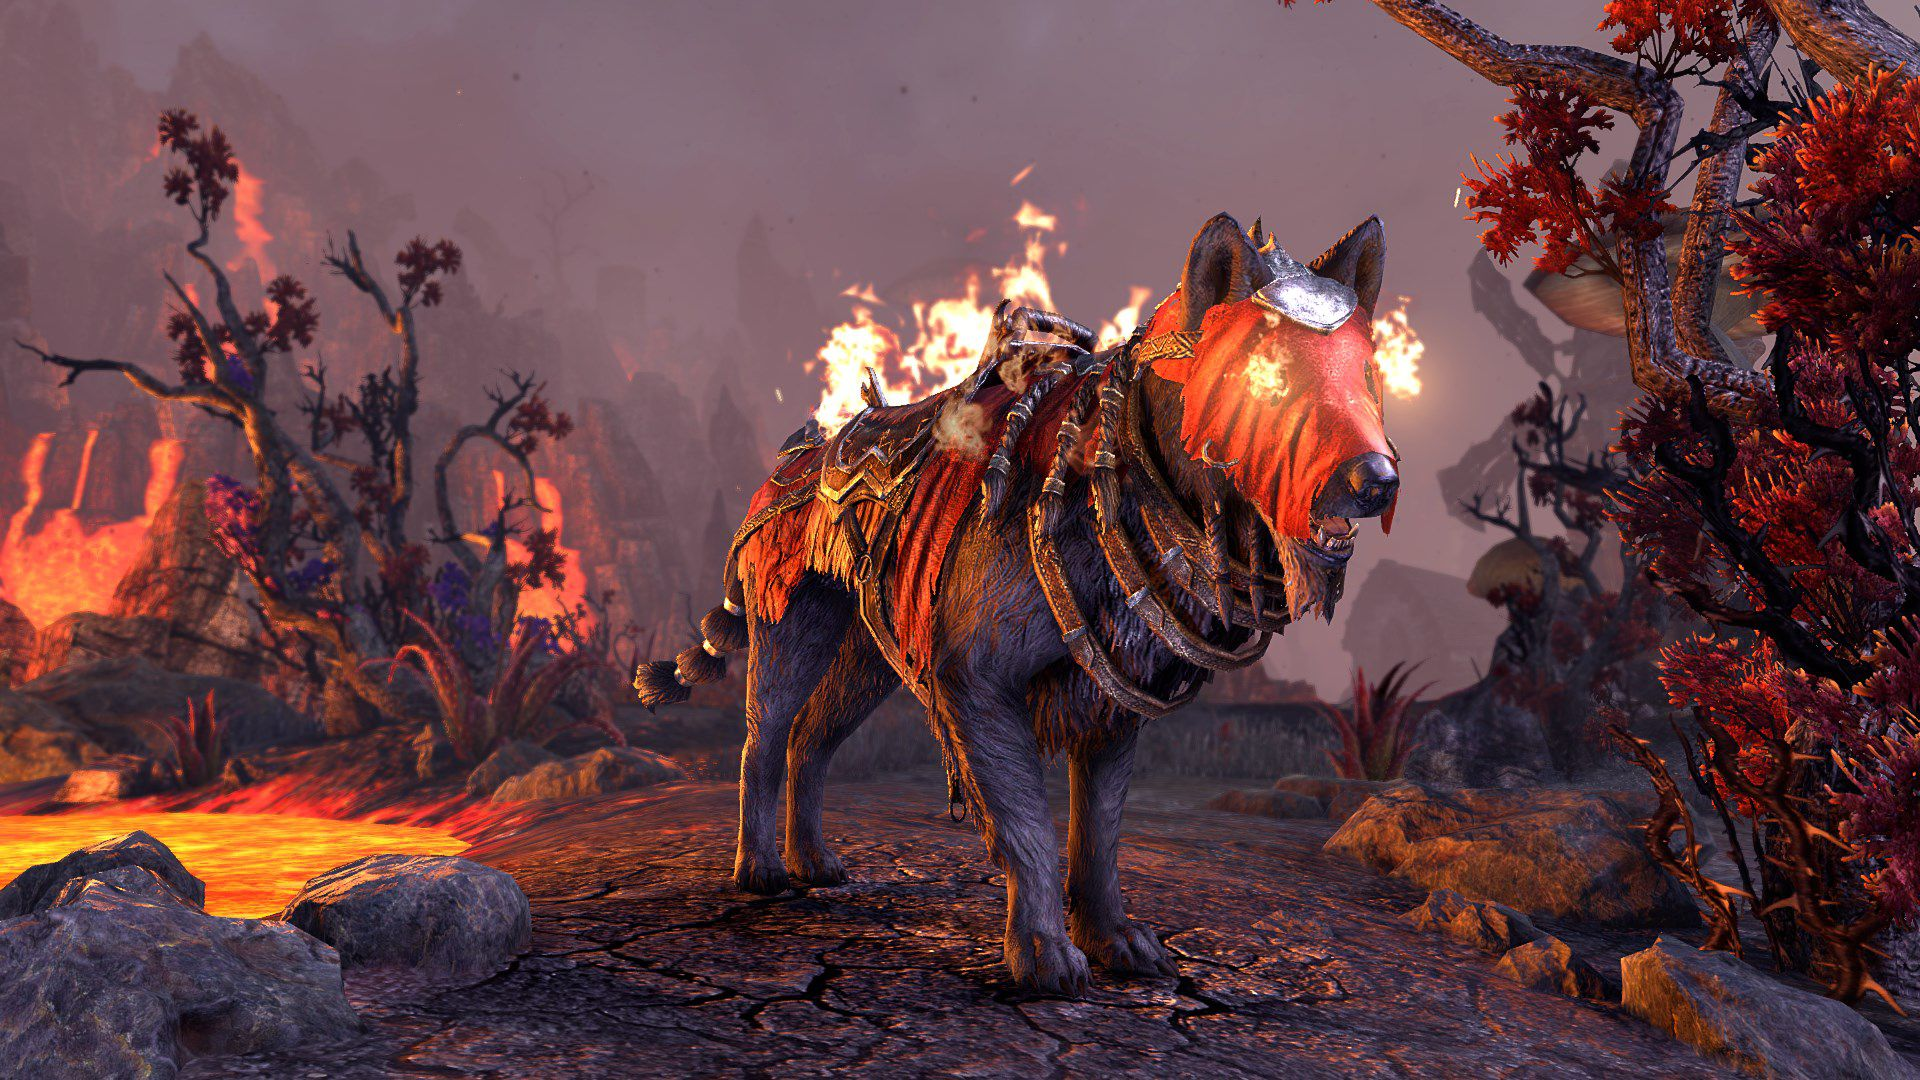 Dragonfire Wolf, Radiant Apex Mount, Scalecaller Crown Crate (image by Zenimax Online)